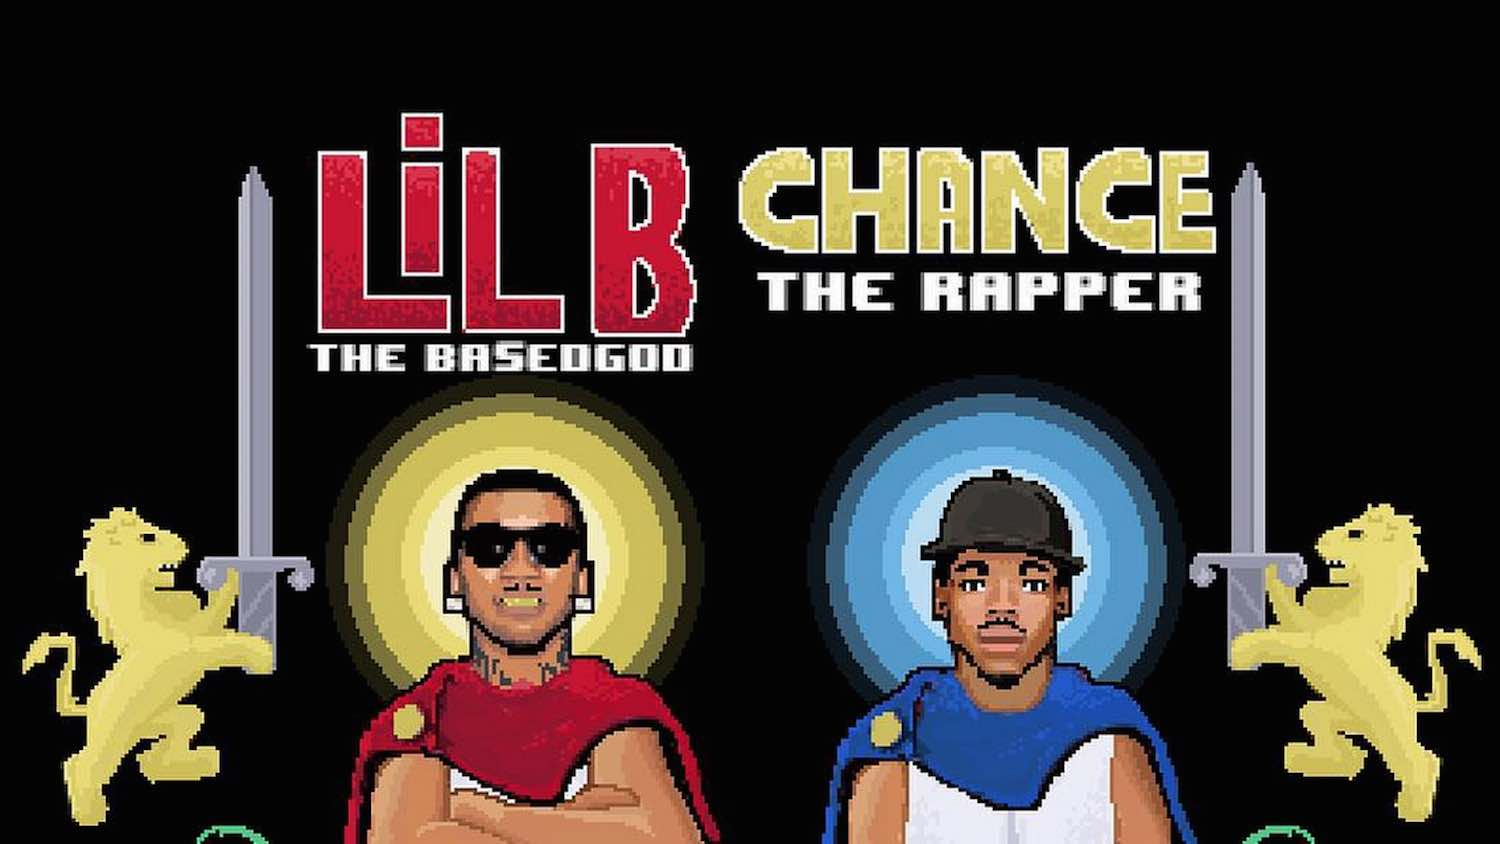 Lil-B-Chance-The-Rapper